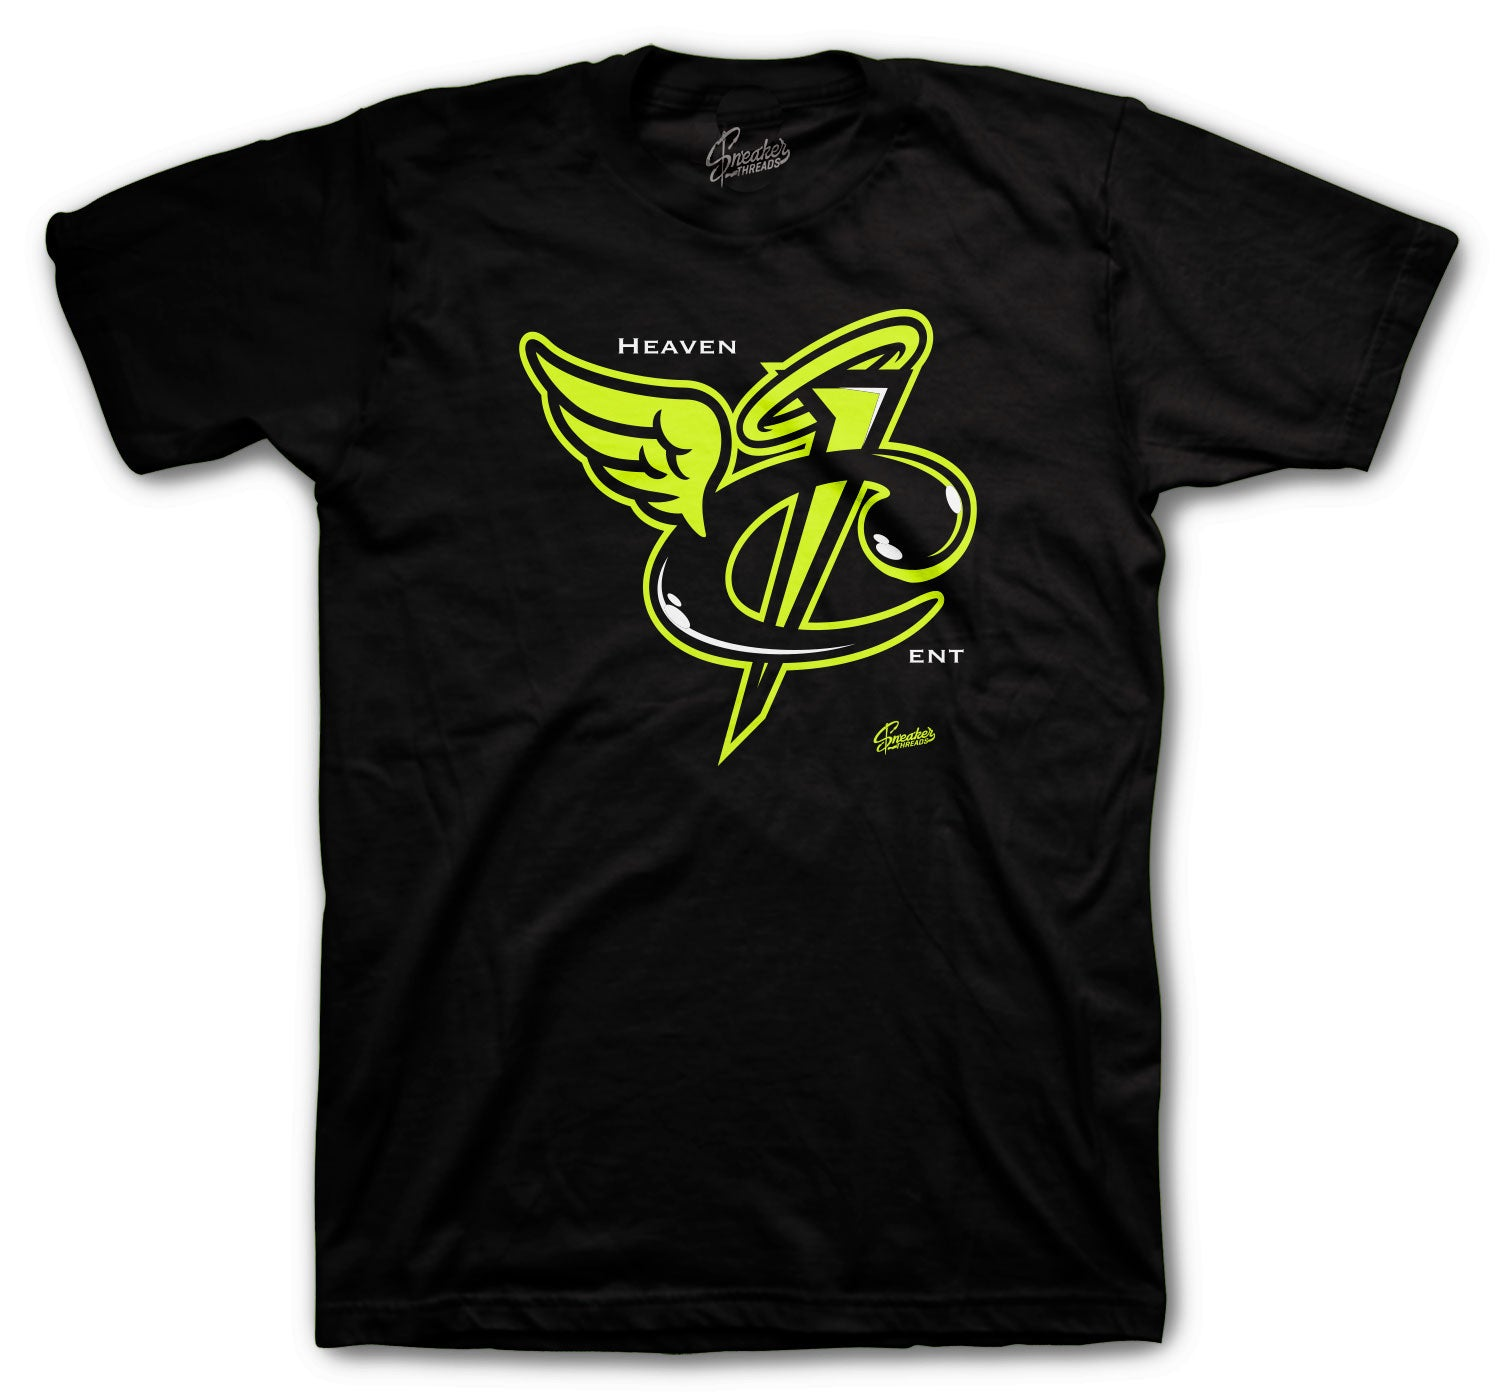 Foamposite Volt Heaven Cent Shirt